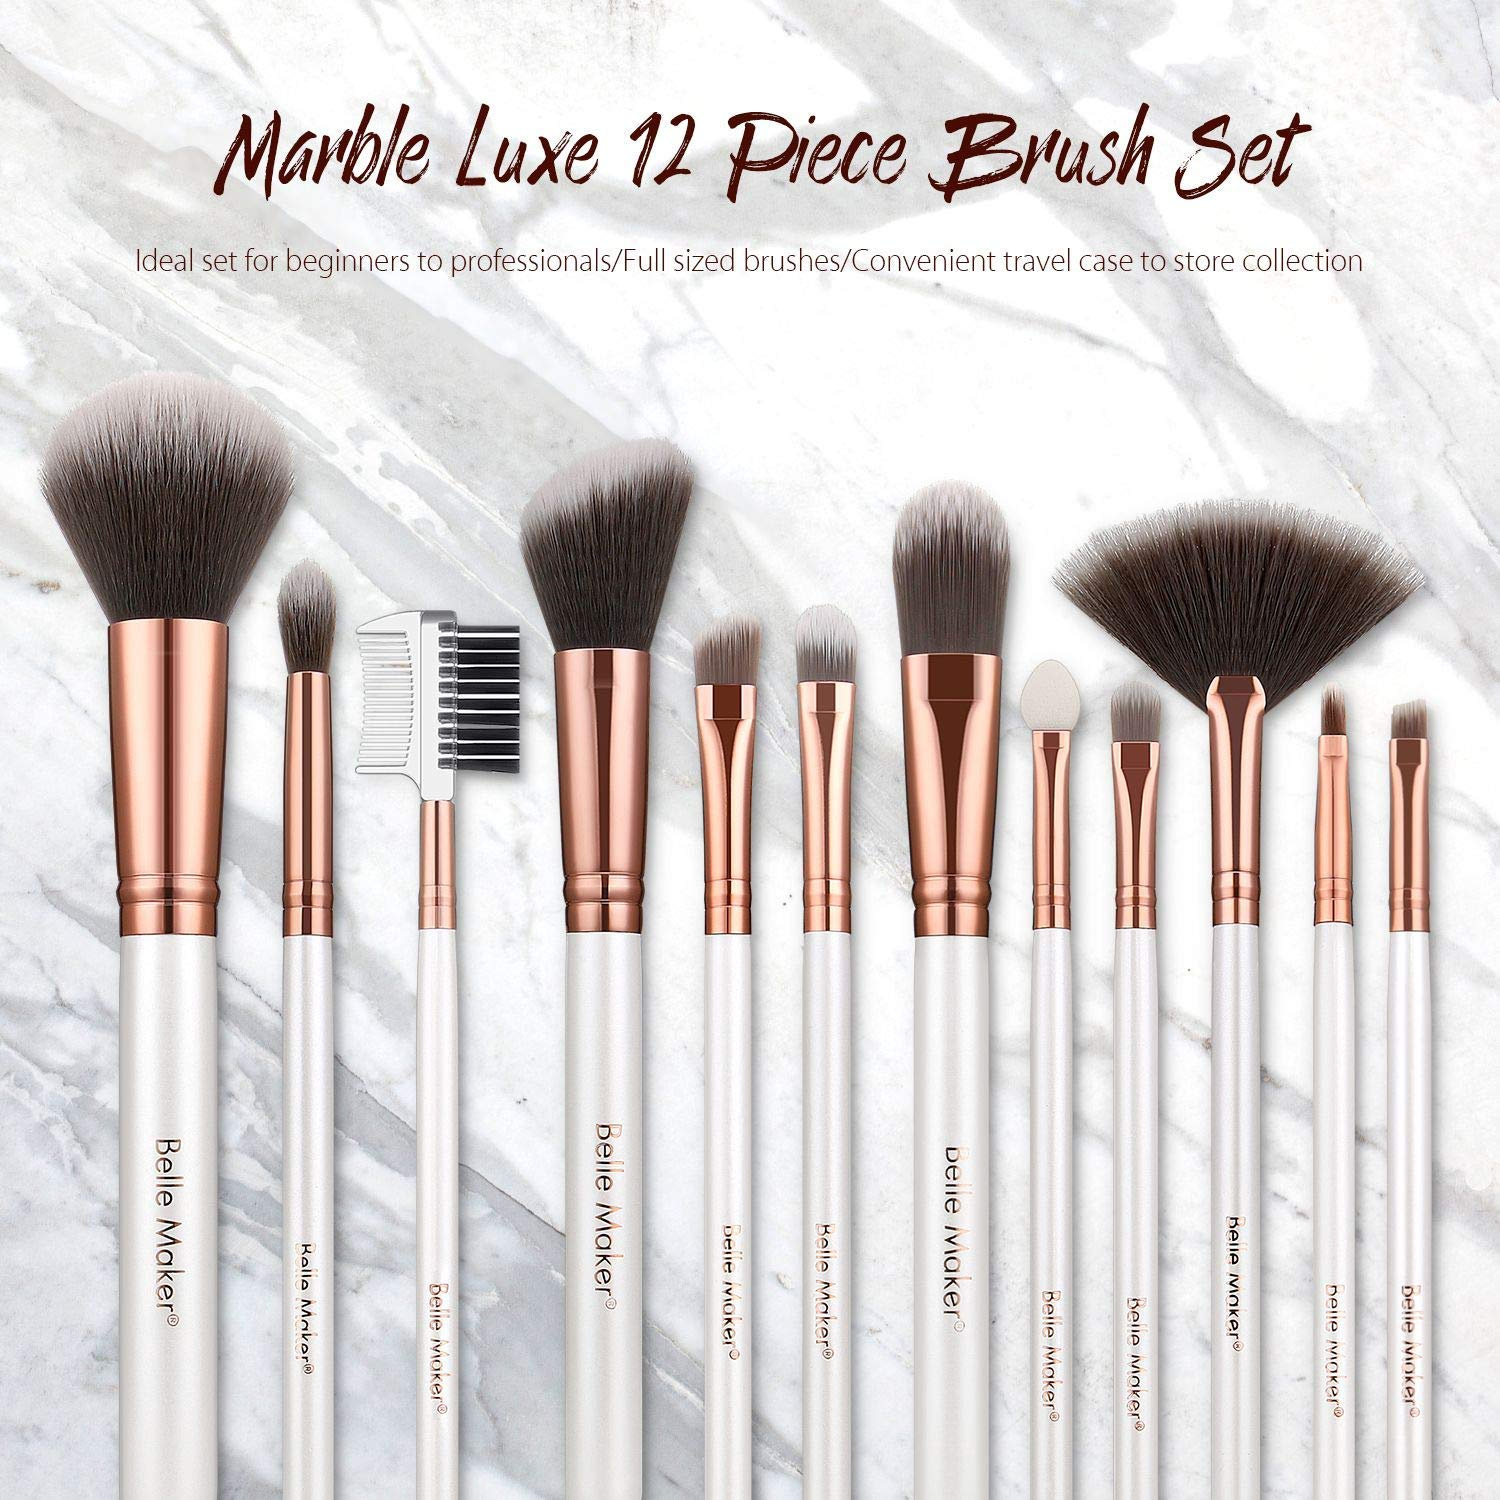 Marble Luxe Belle Maker Makeup Brushes